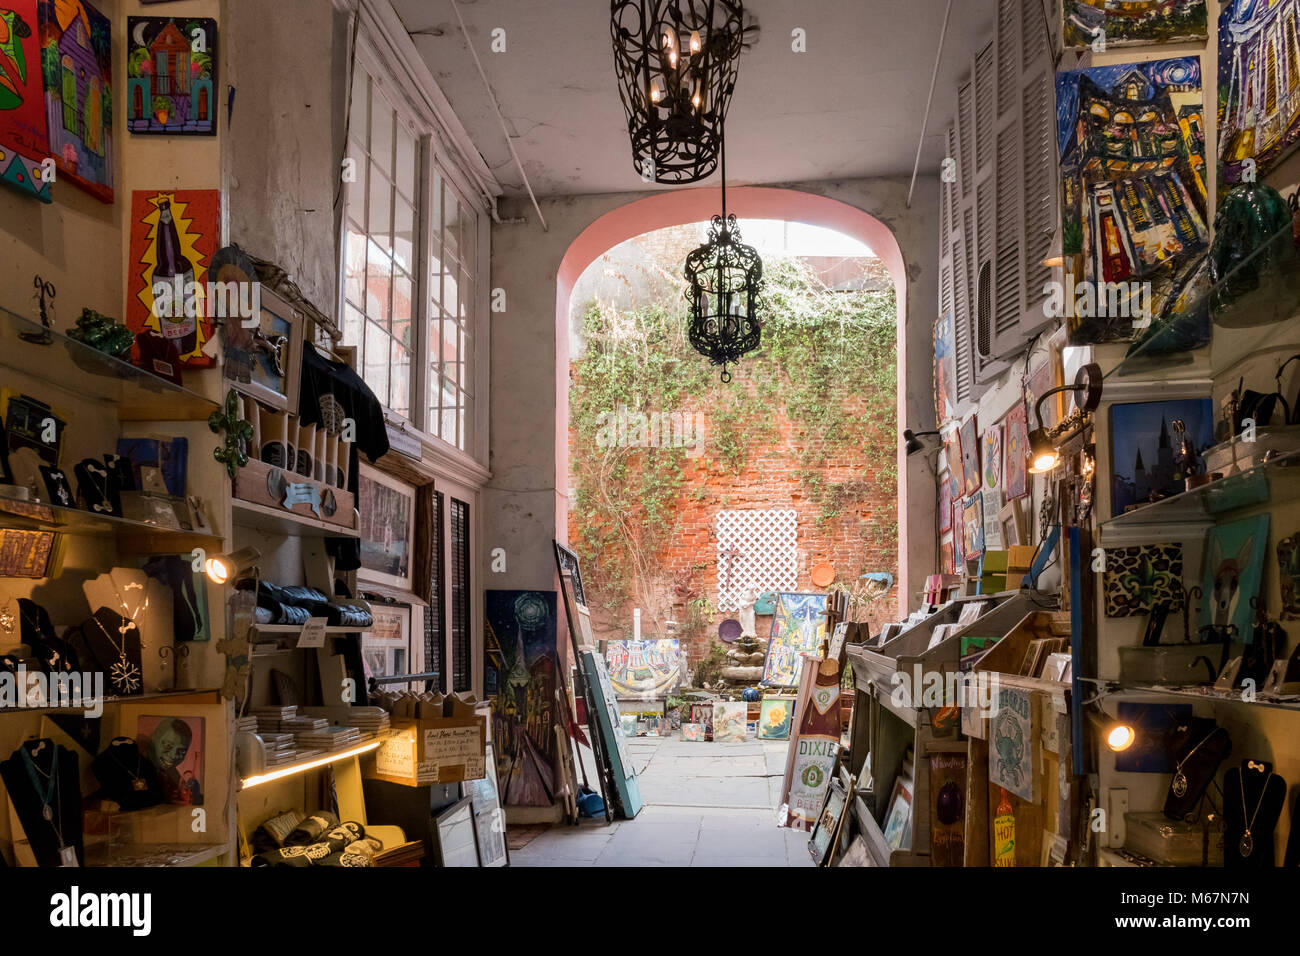 New Orleans, FEB 21: Interior view of an art store on FEB 21,2018 at New Orleans, Louisiana - Stock Image